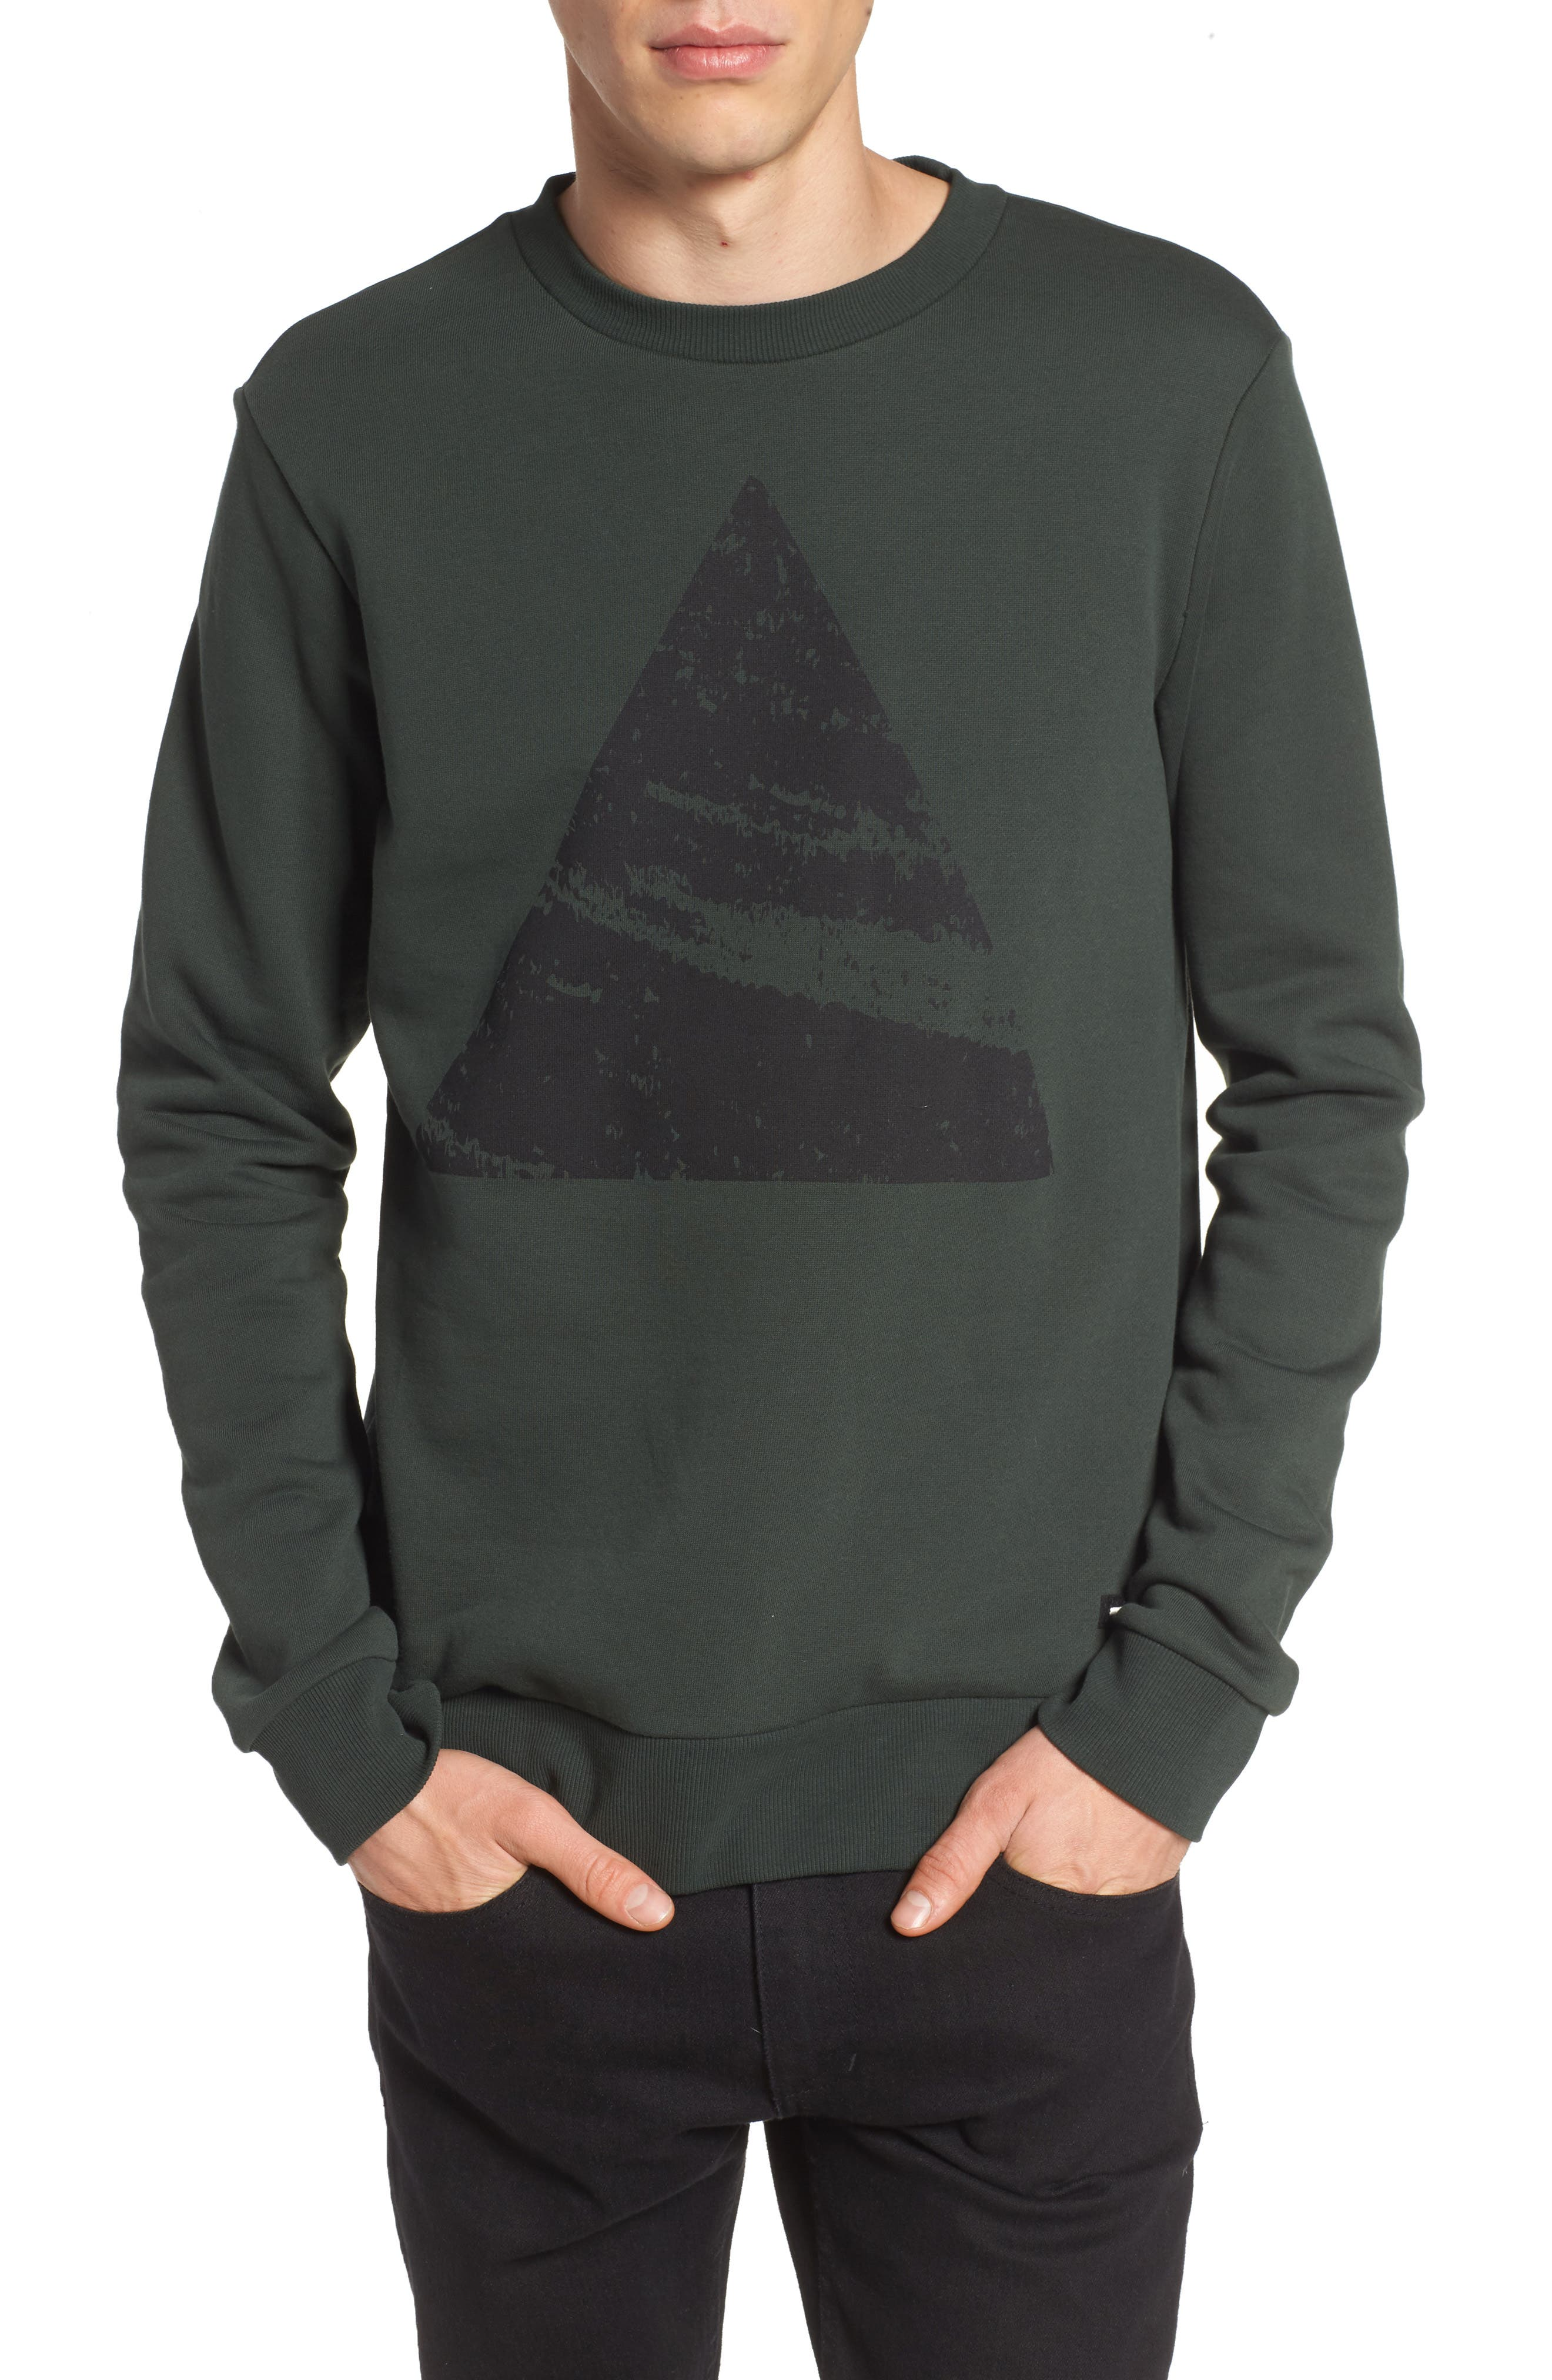 Main Image - Dr. Denim Supply Co. Adrian Sweatshirt